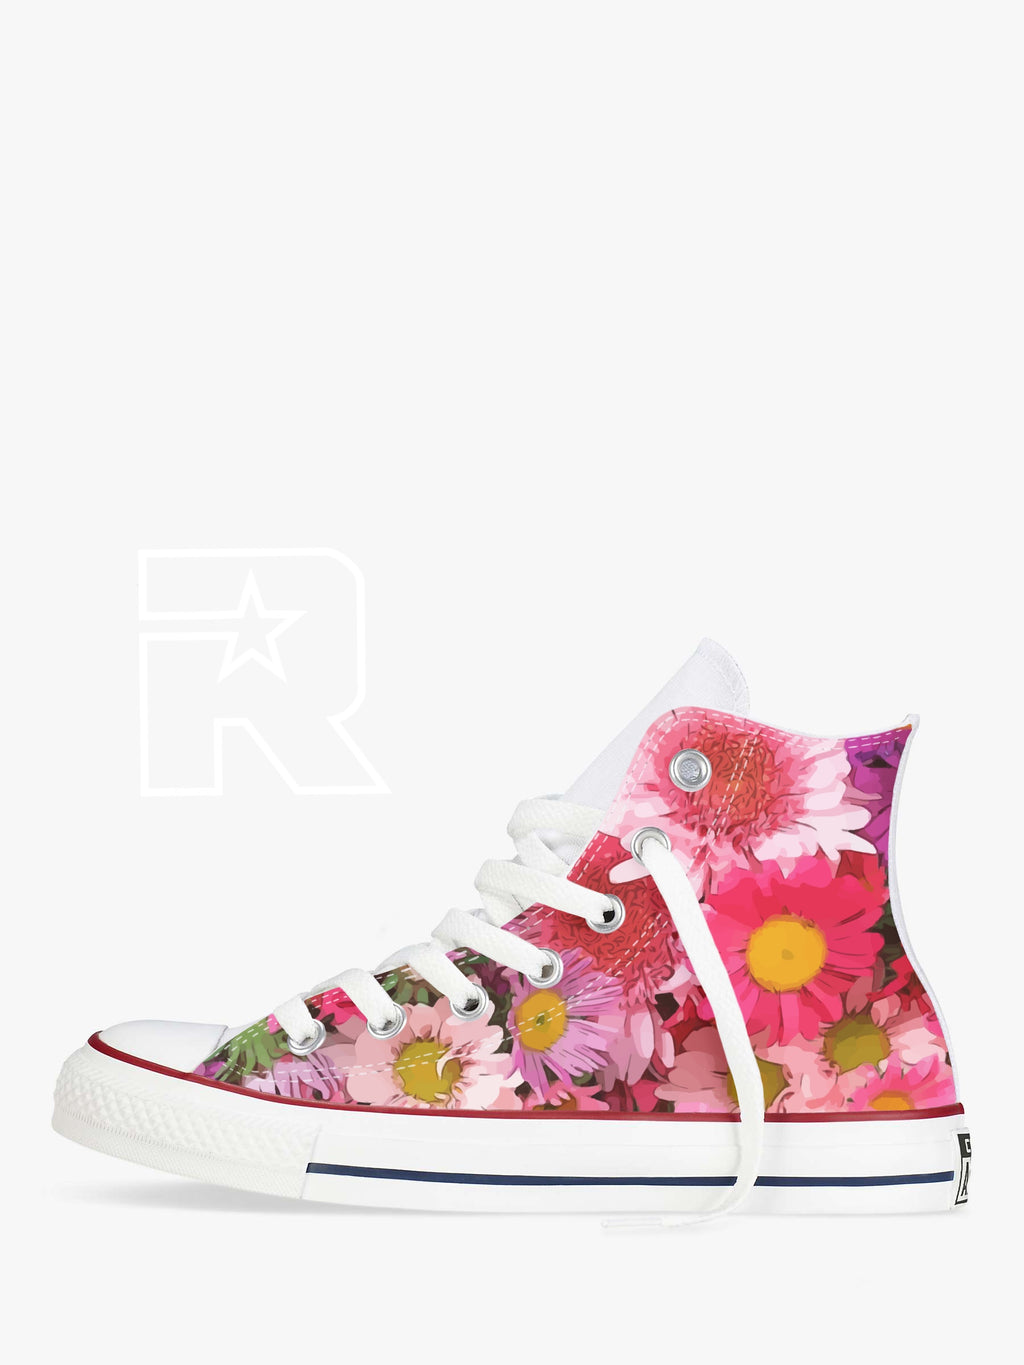 Daisy Mae High Top Converse